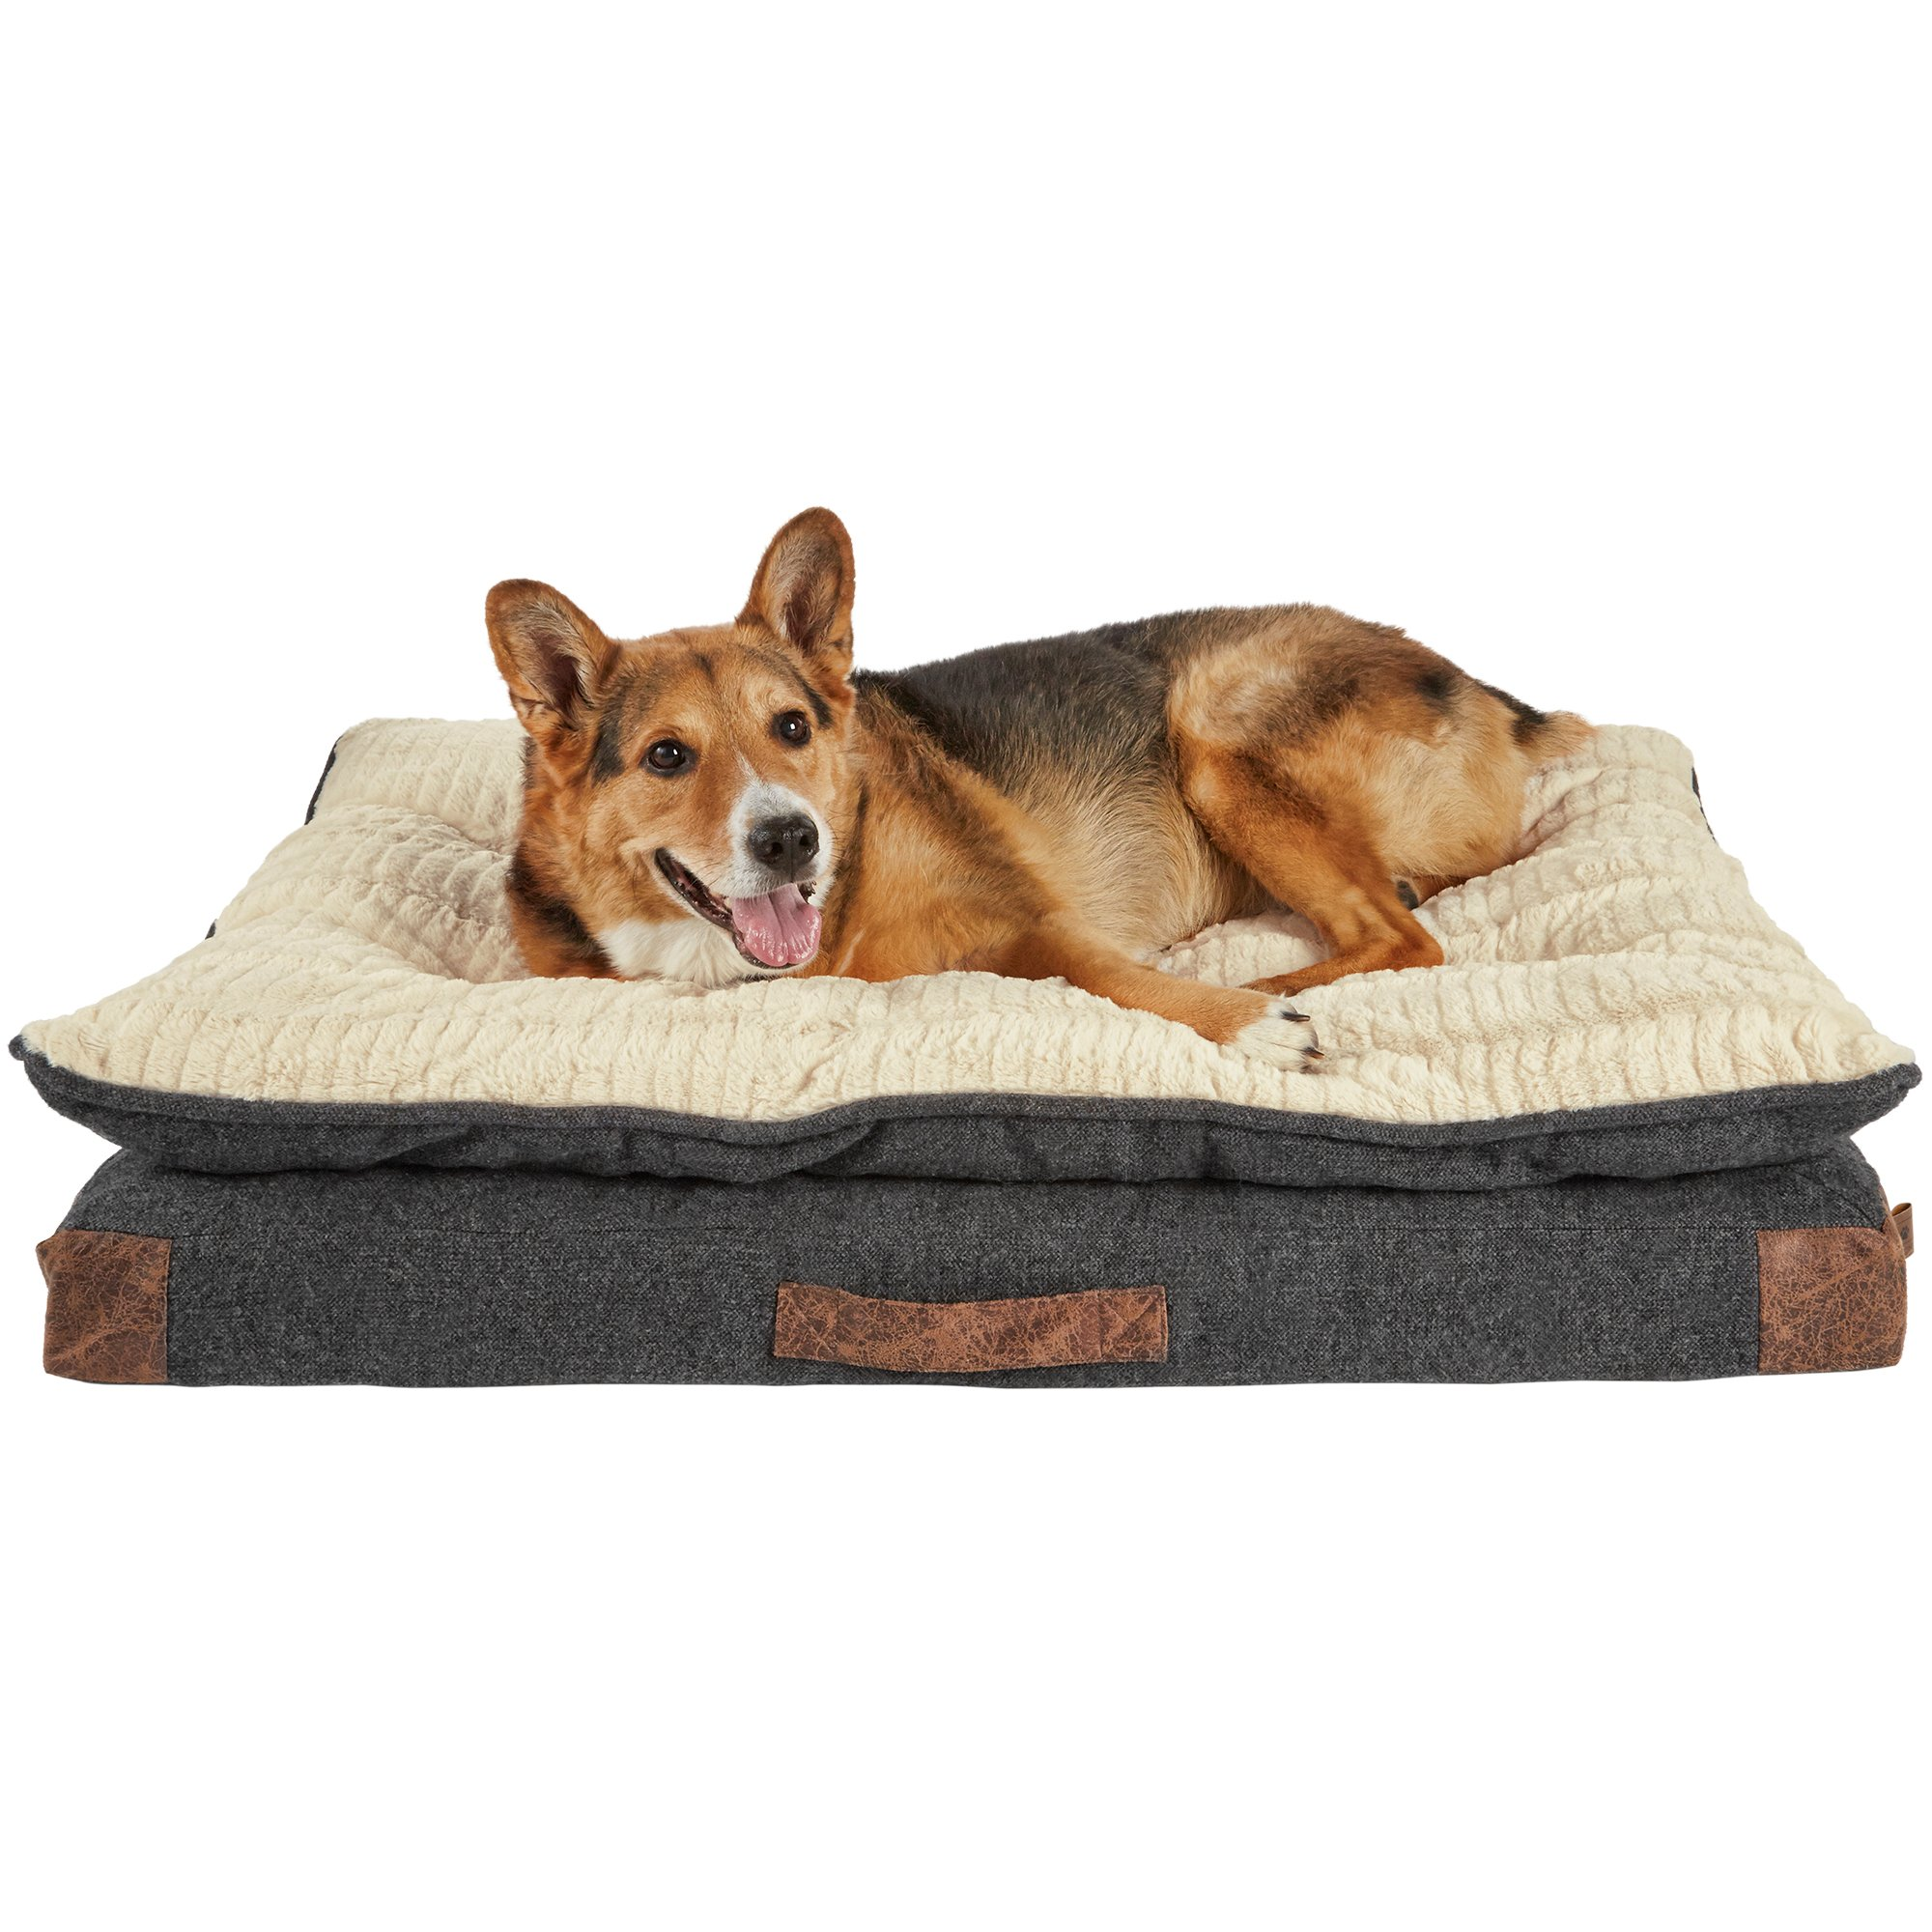 Dog Beds Pet Harmony Grey Patched Pillowtop Lounger Orthopedic Dog Bed Petco